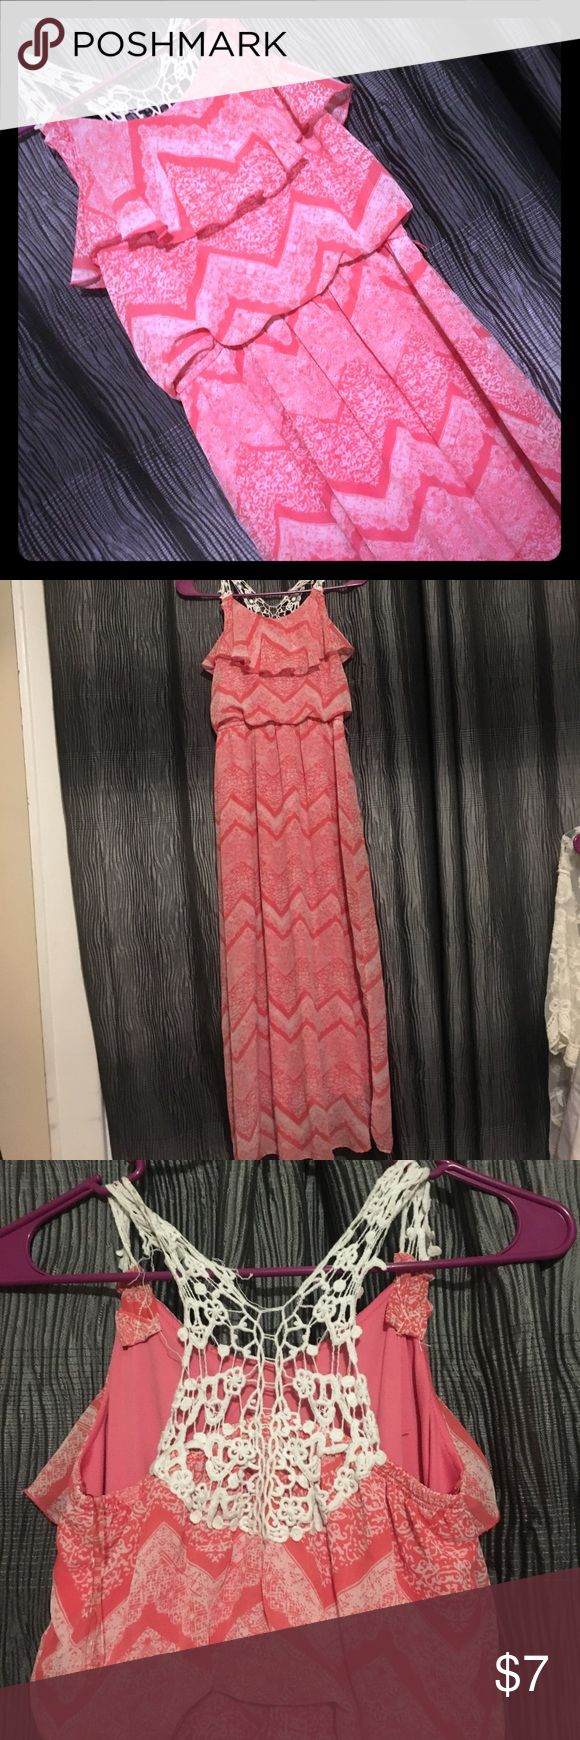 3 for 15 ! Coral maxi dress!!! Great condition! The only problem with it is in the back at the vet top the lace has torn a bit which you can see in the picture, it's not noticeable but it's still there Speechless Dresses Casual